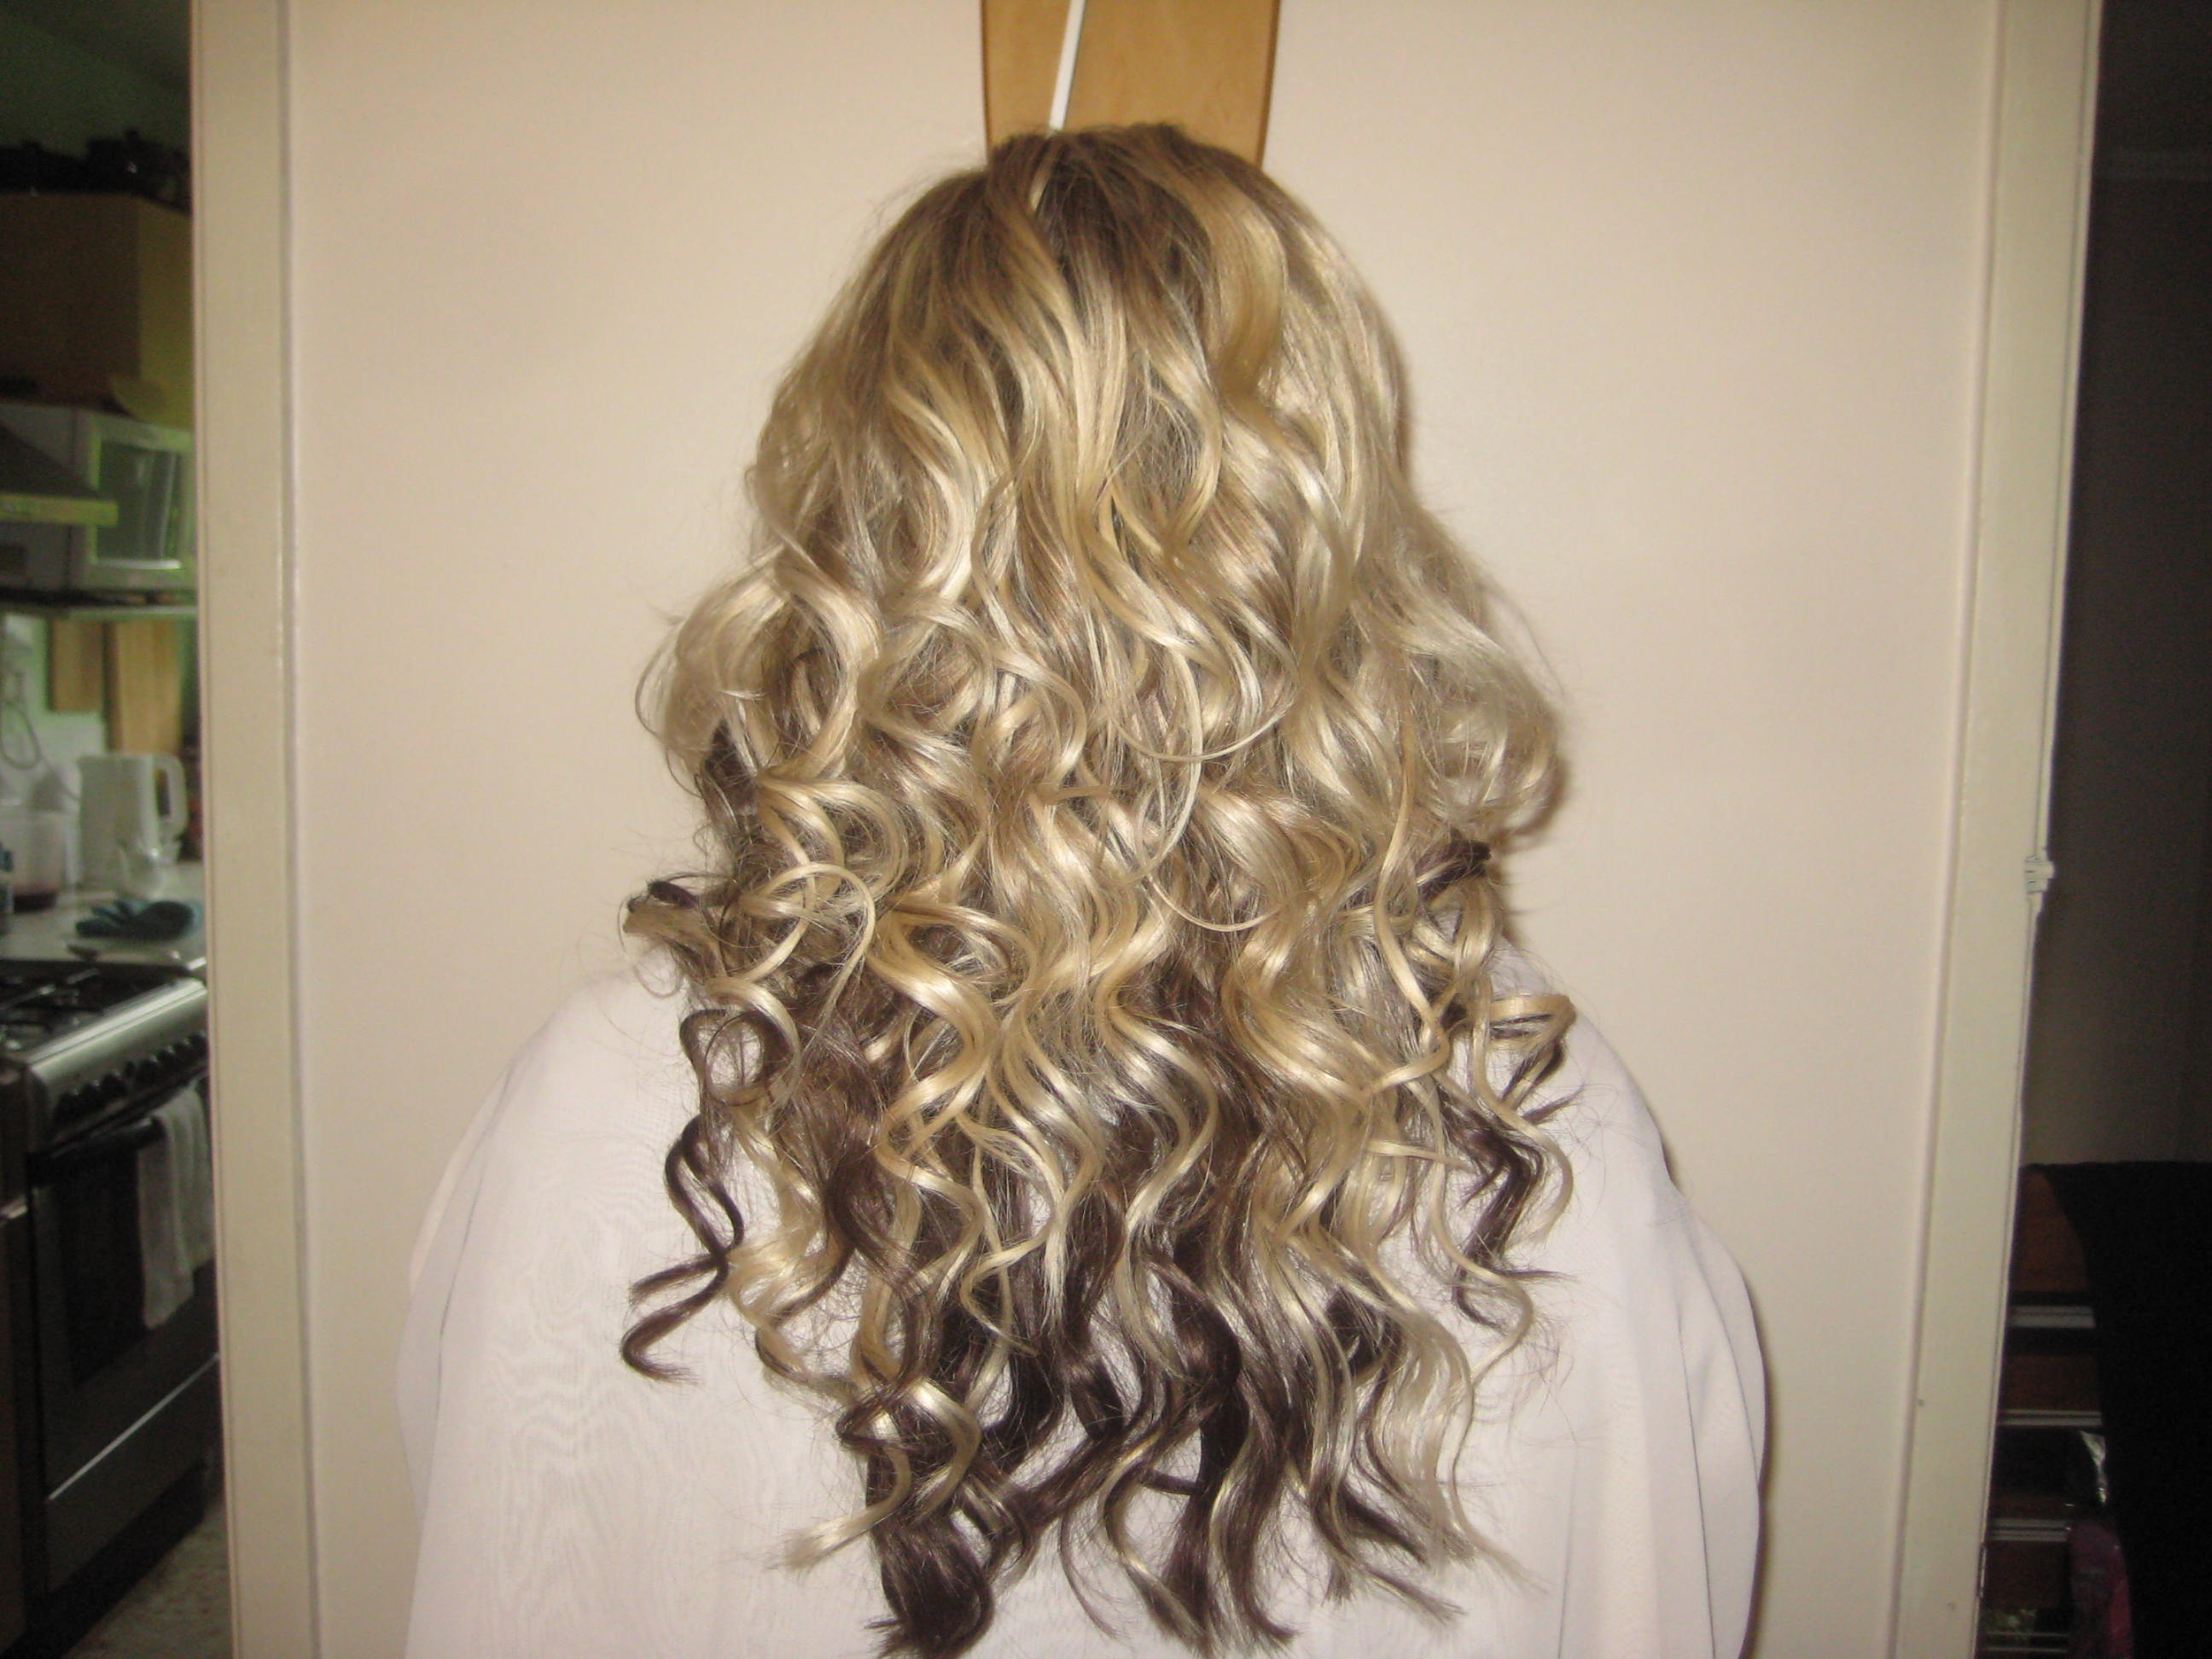 Get Your Hair Straight Micro Ring Hair Extensions